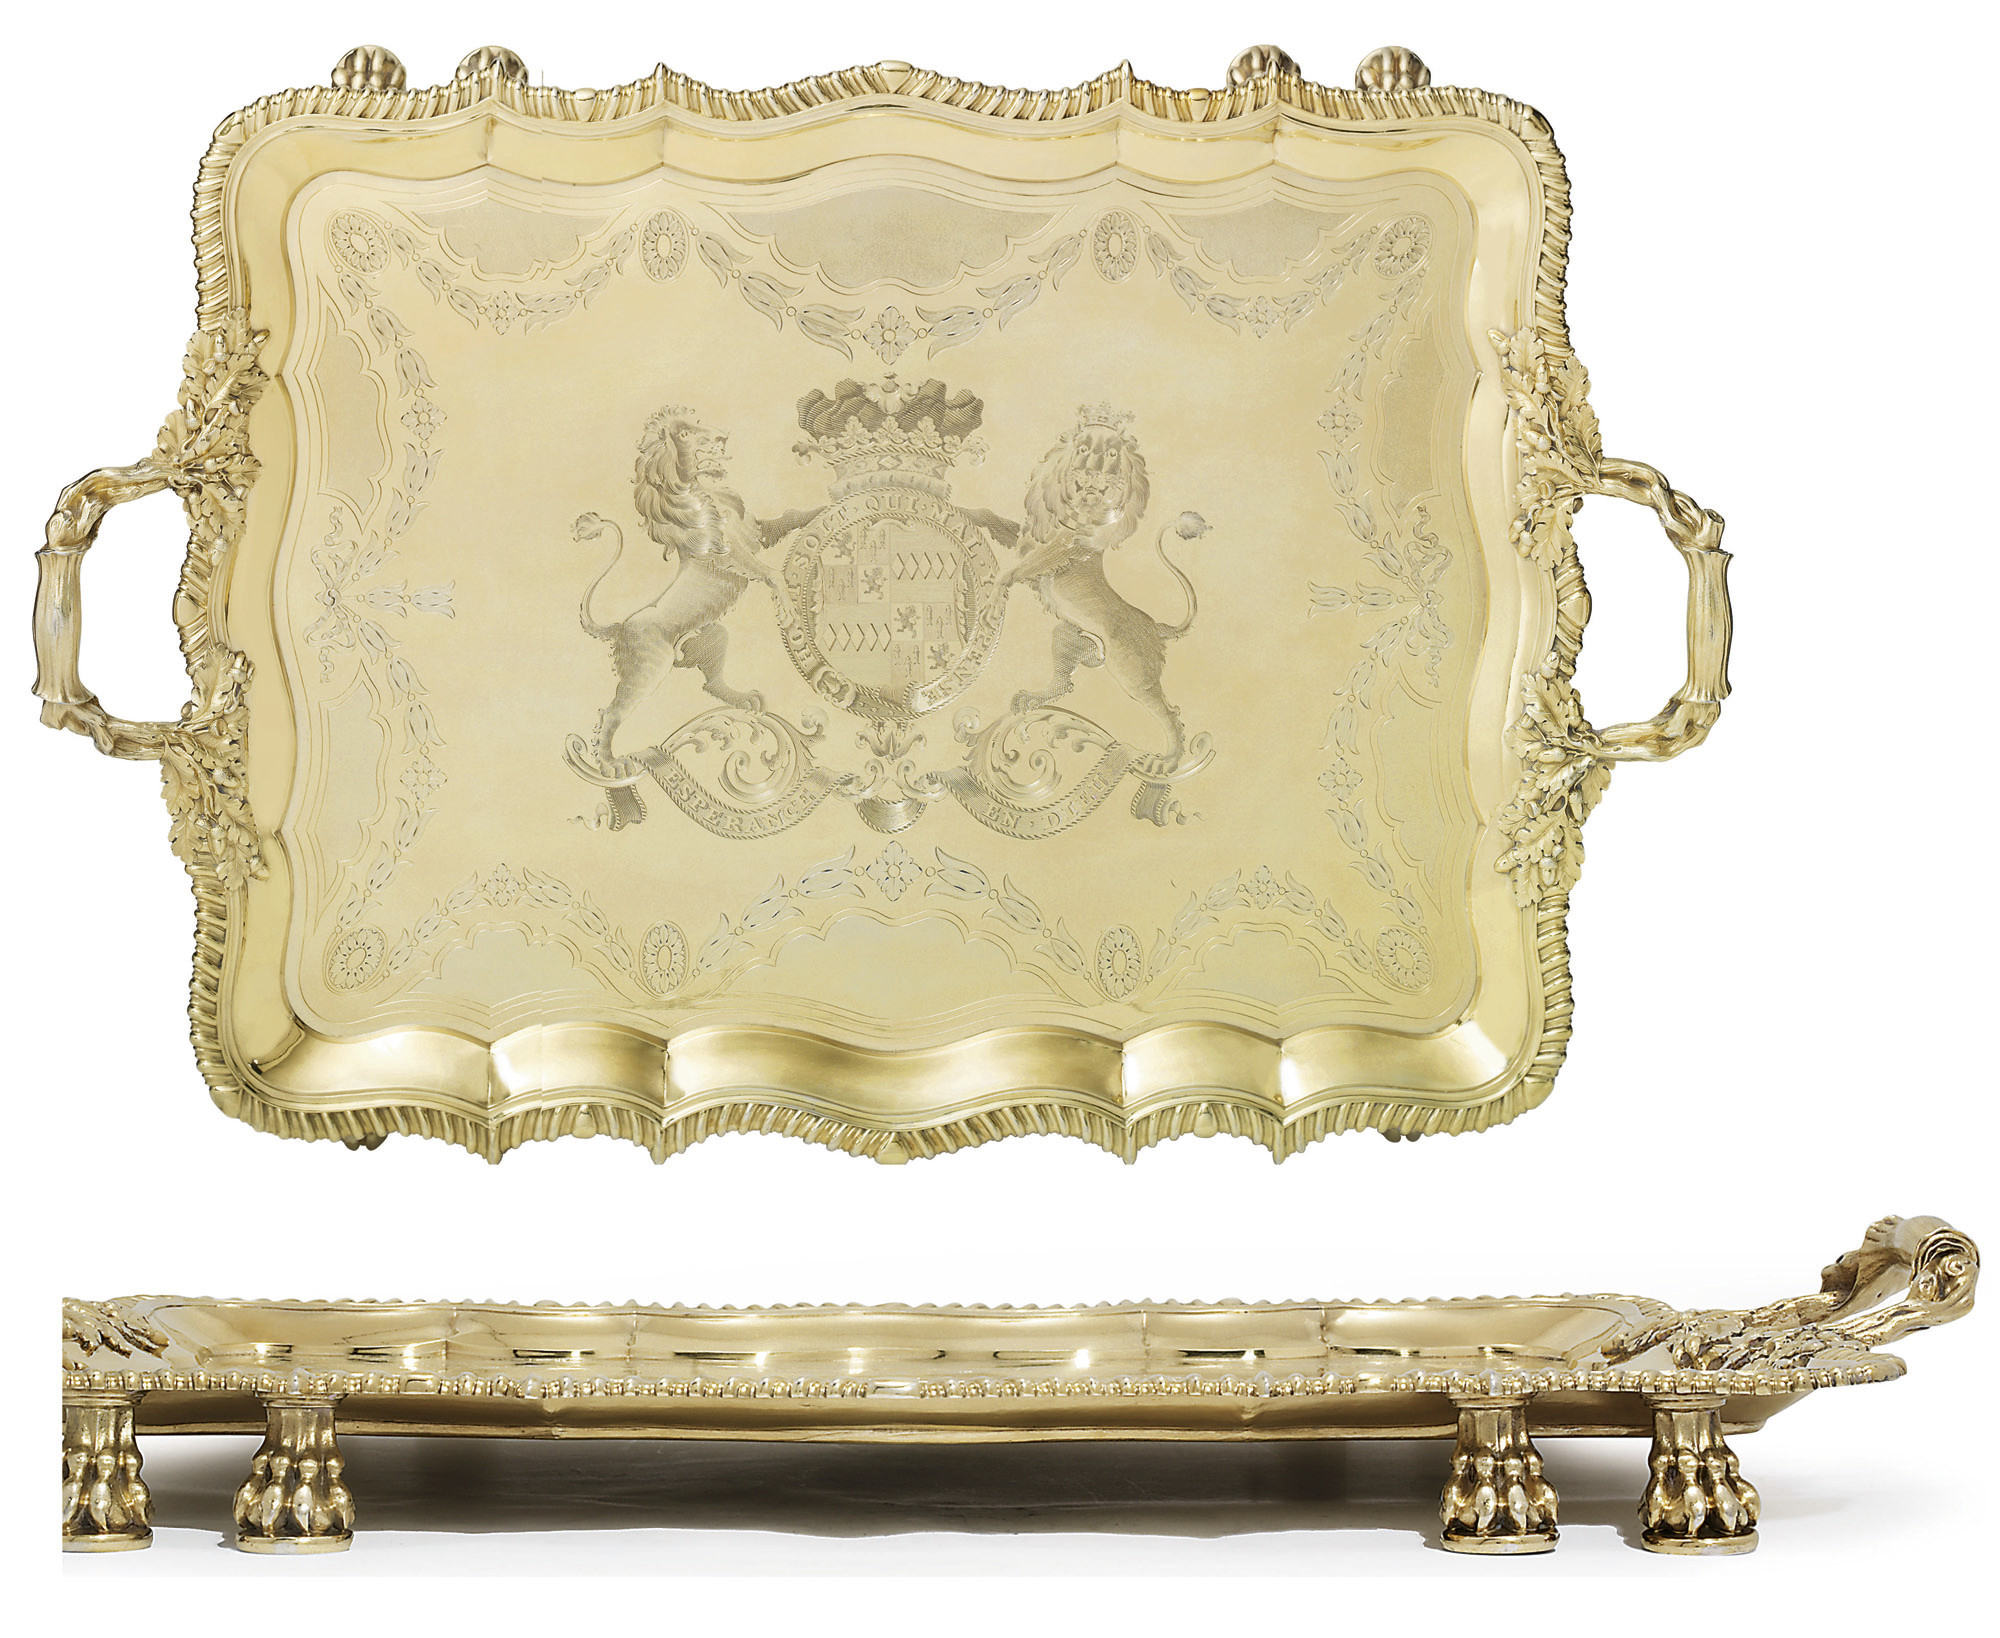 AN IMPORTANT GEORGE IV SILVER-GILT TRAY